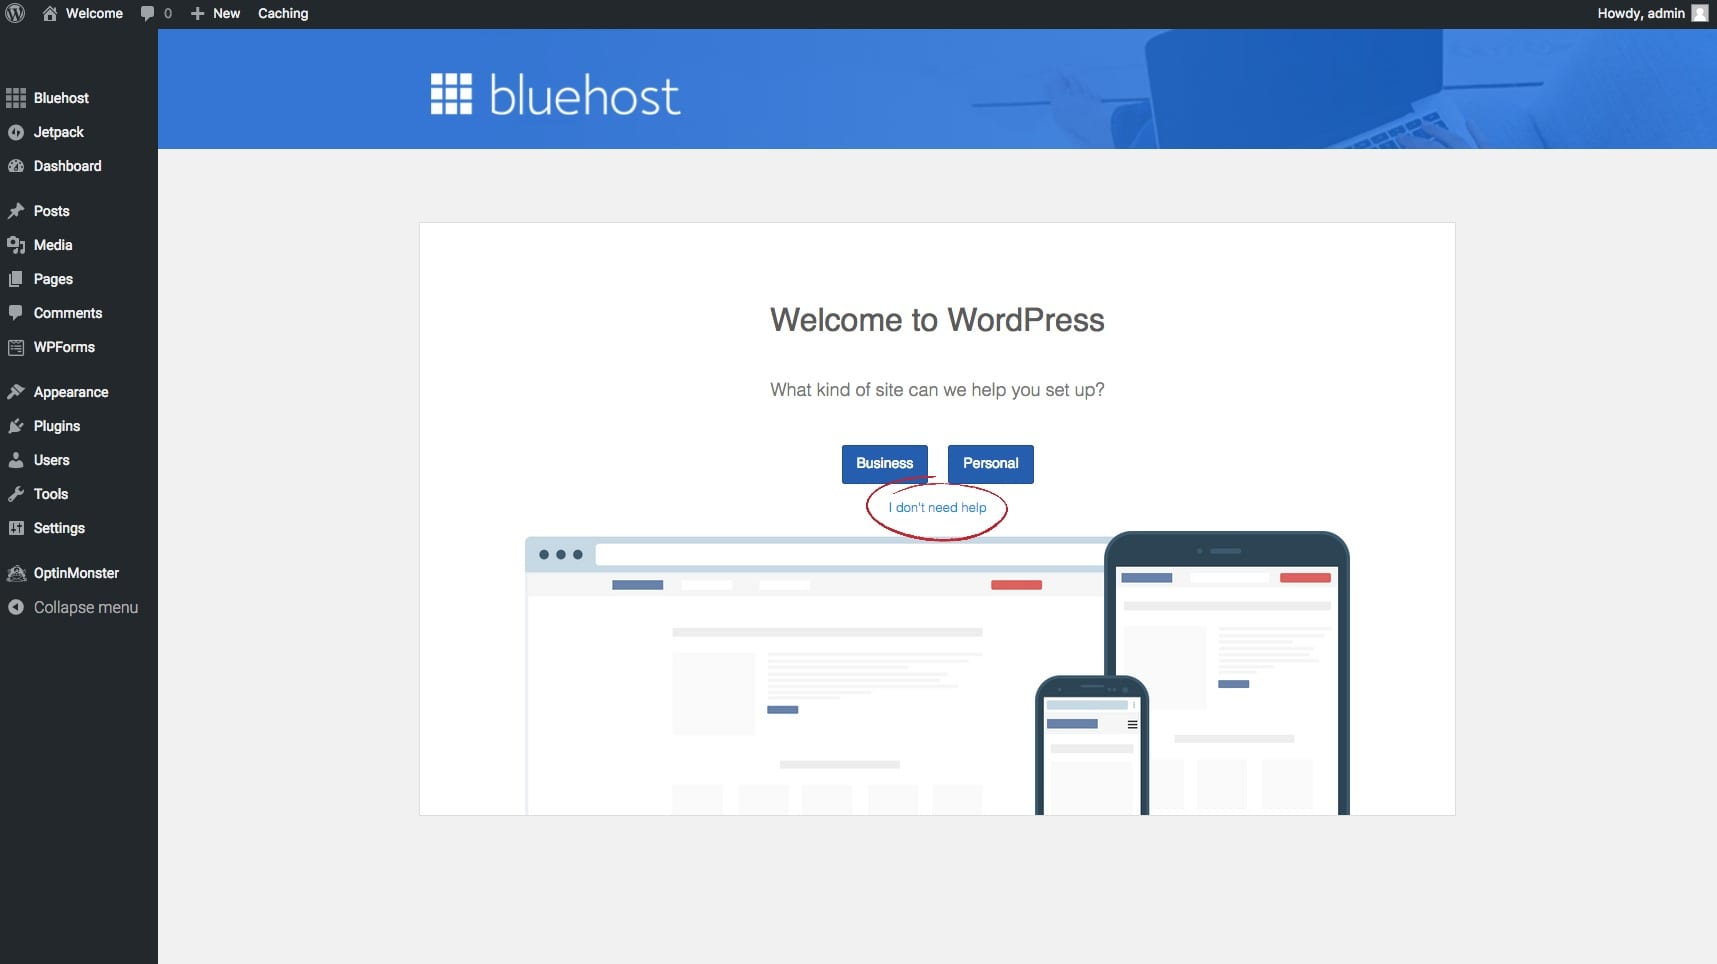 i dont need any help bluehost dashboard